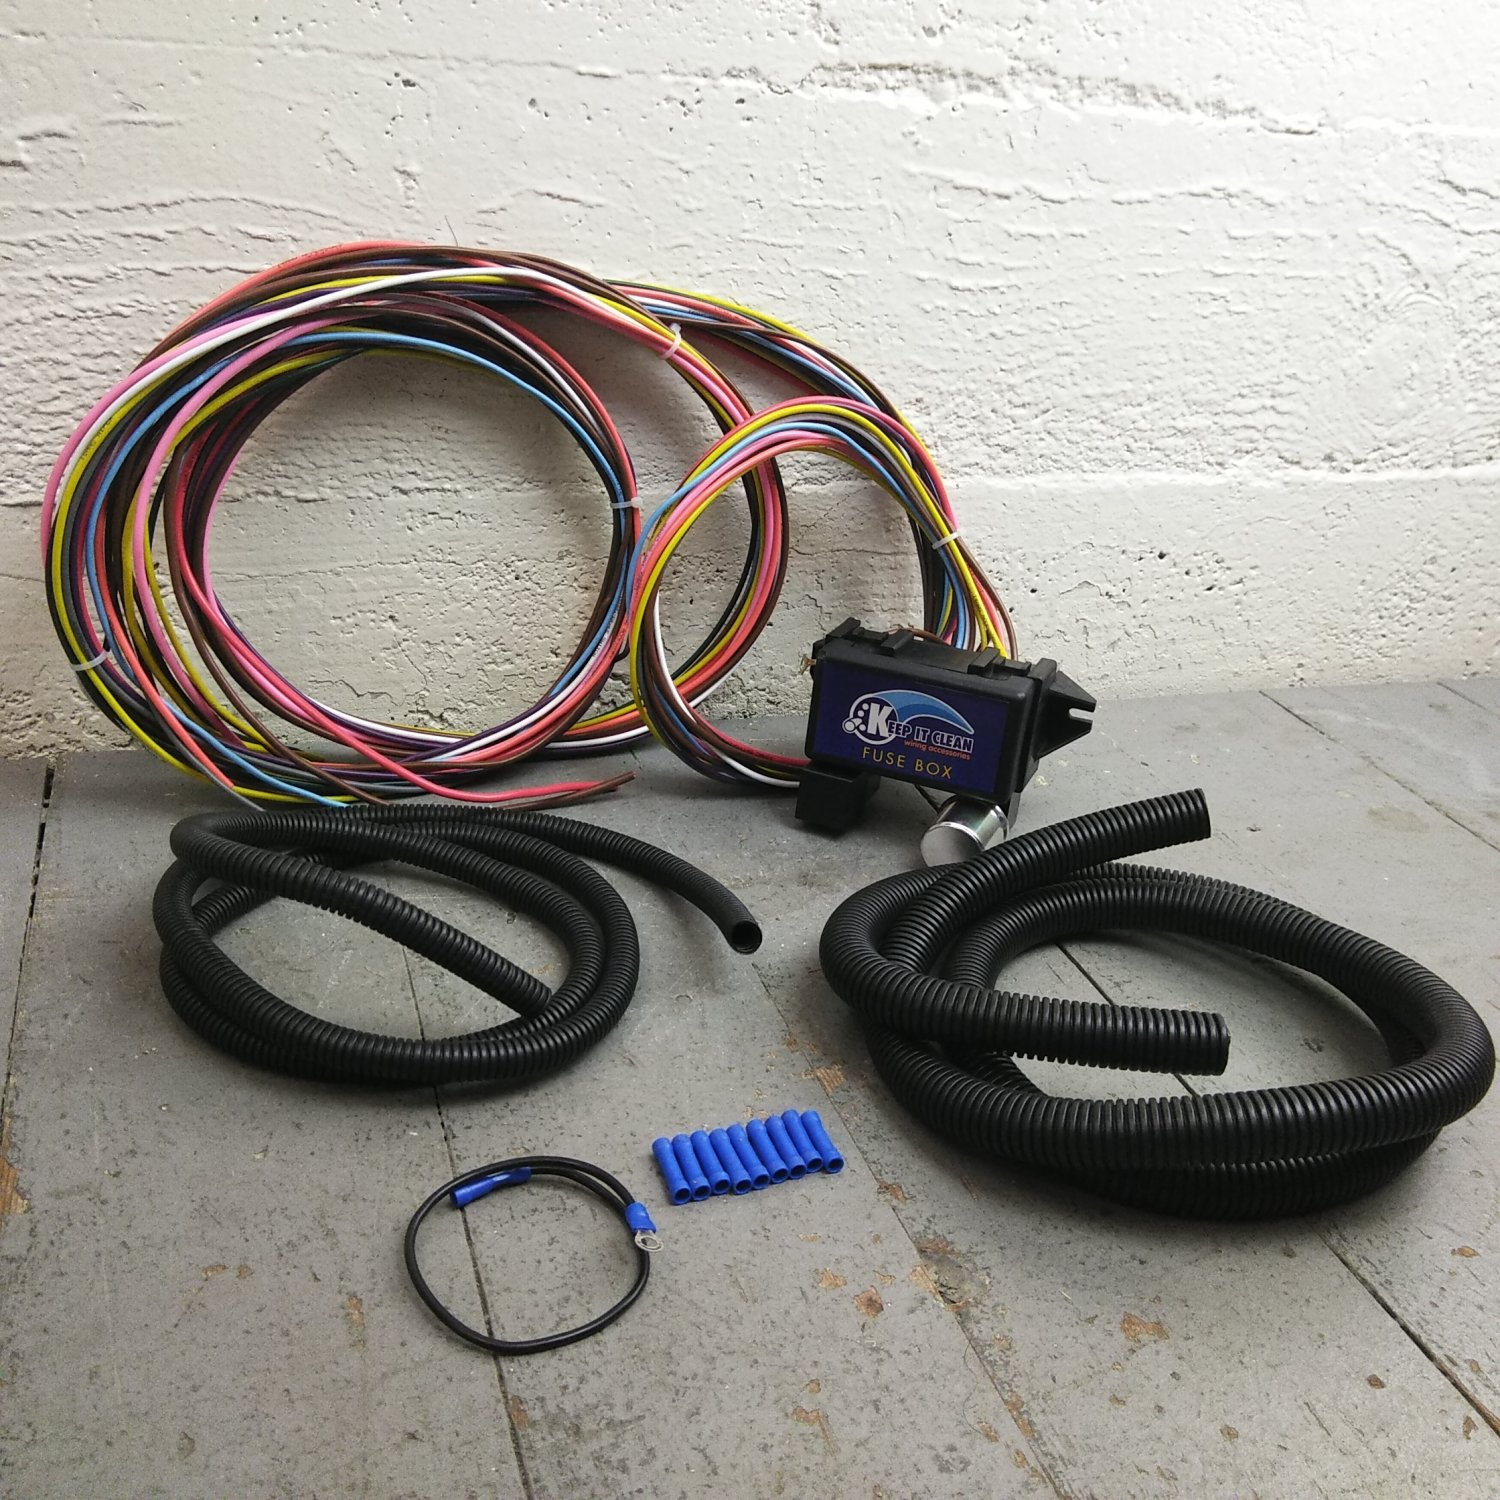 hight resolution of wire harness fuse block upgrade kit for no reserve chrysler hot rod hot rod wiring kit digital hot rod fuse box kit